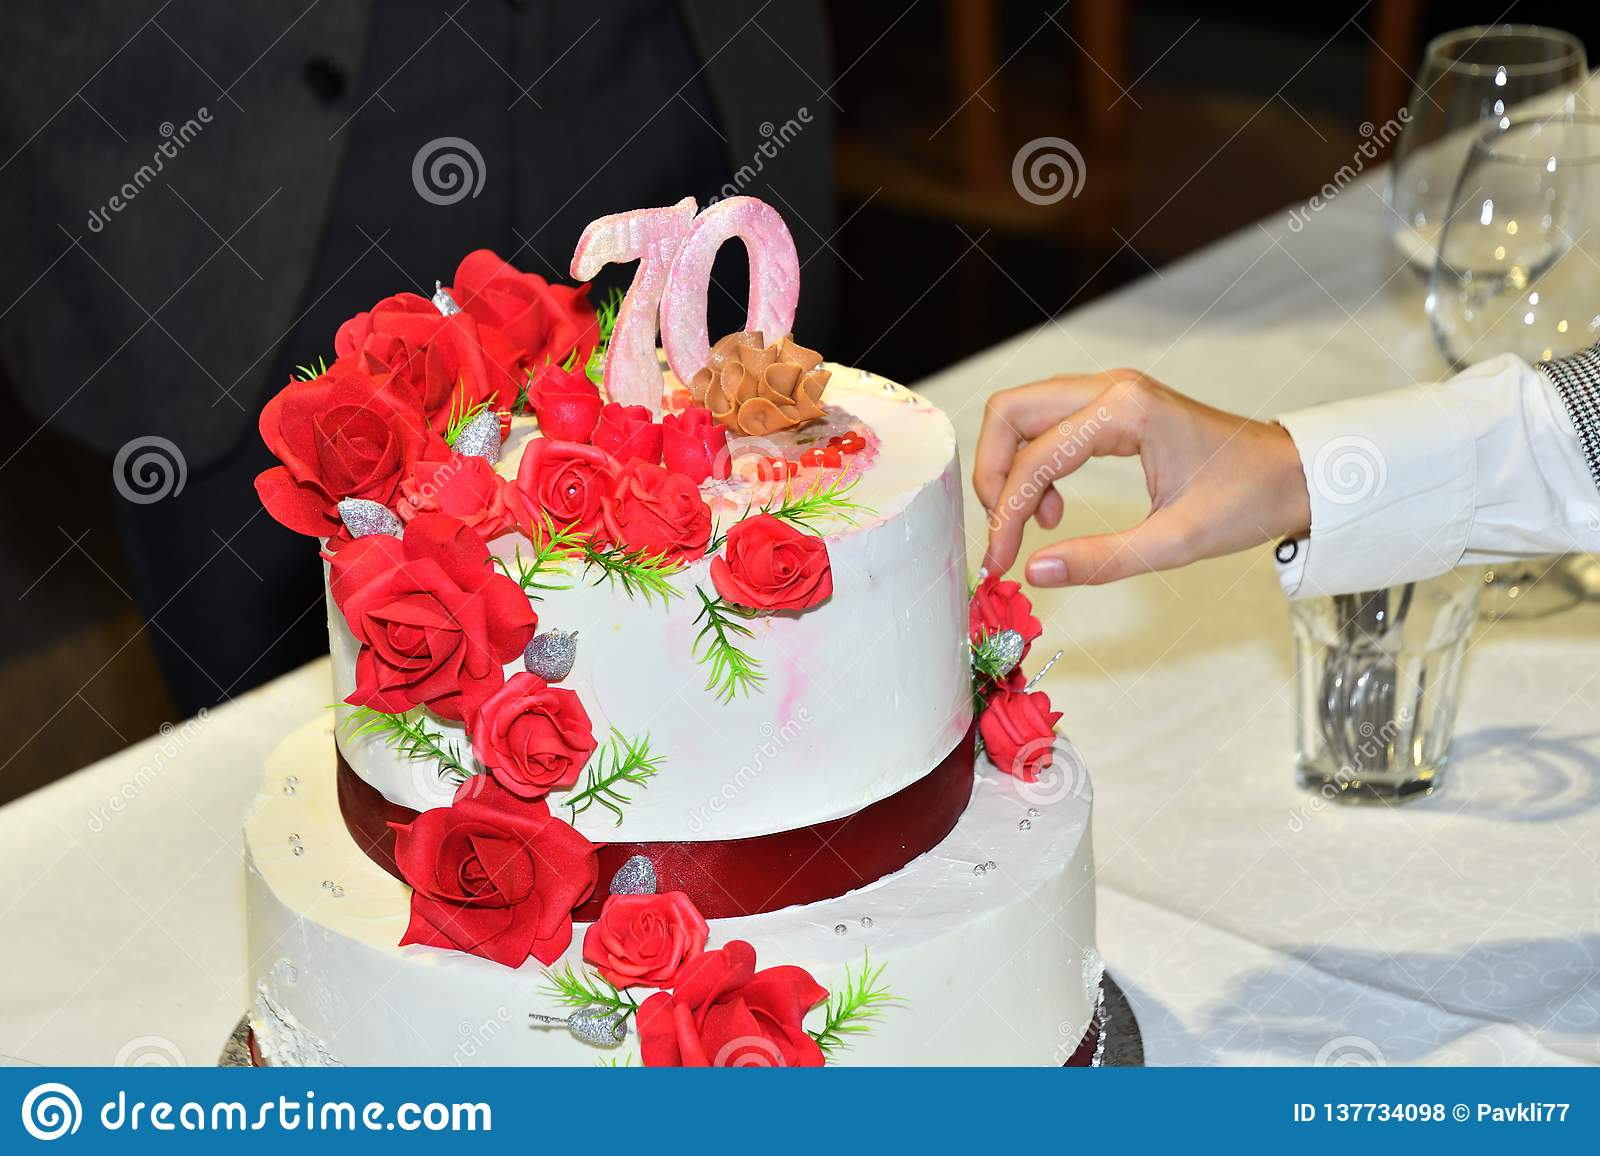 Miraculous Slicing Cakes With A Knife To Celebrate 70 Birthdays Stock Photo Funny Birthday Cards Online Elaedamsfinfo